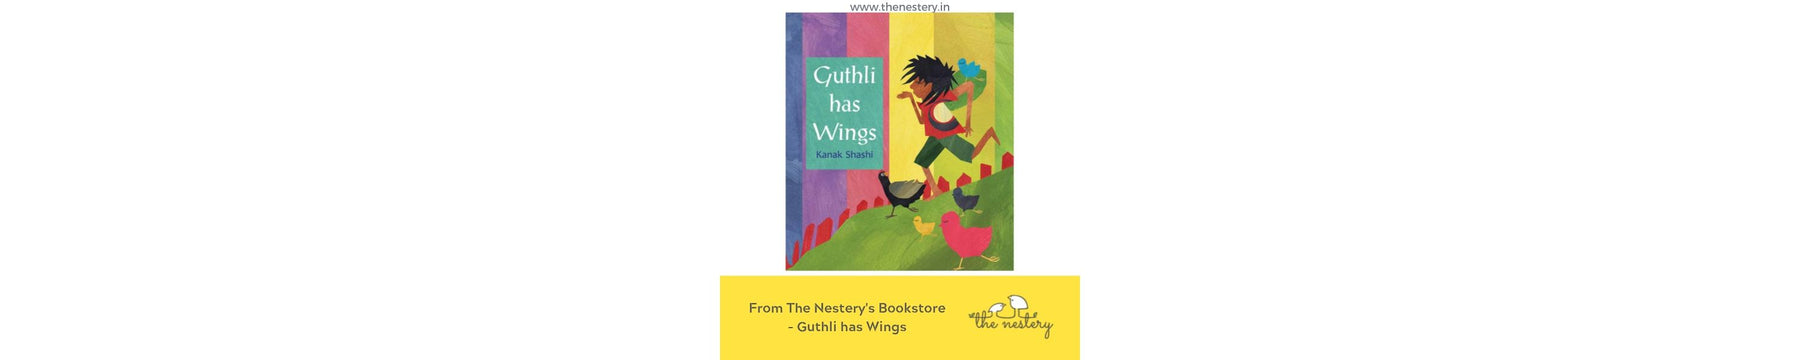 Book Review - Guthli has Wings